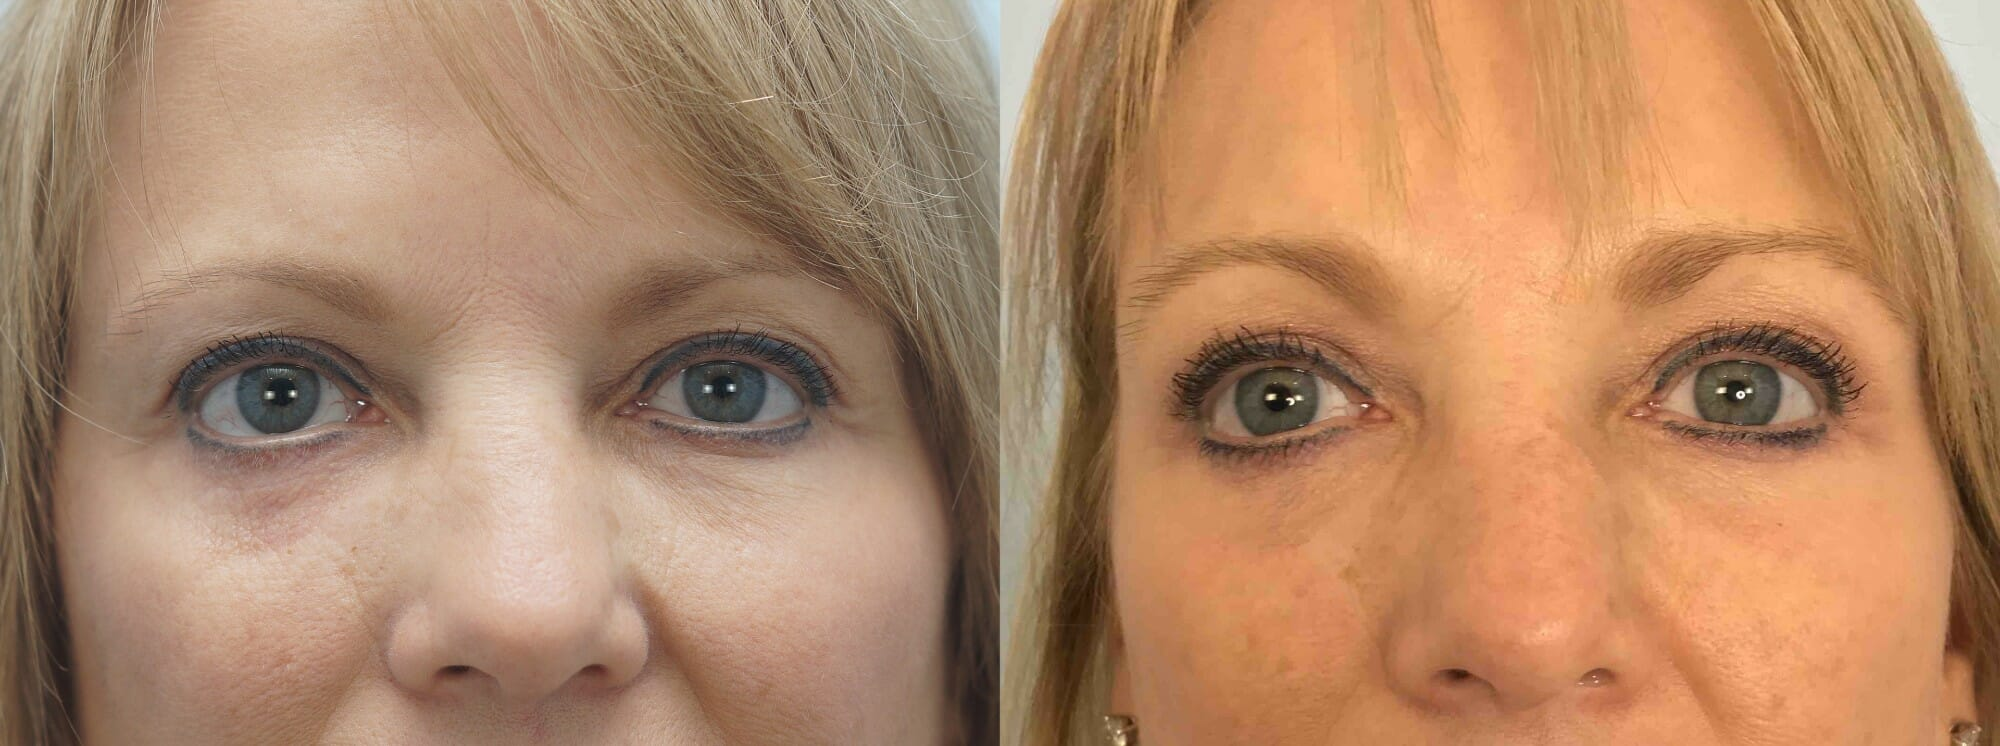 EYELID SURGERY (BLEPHAROPLASTY) PATIENT 16